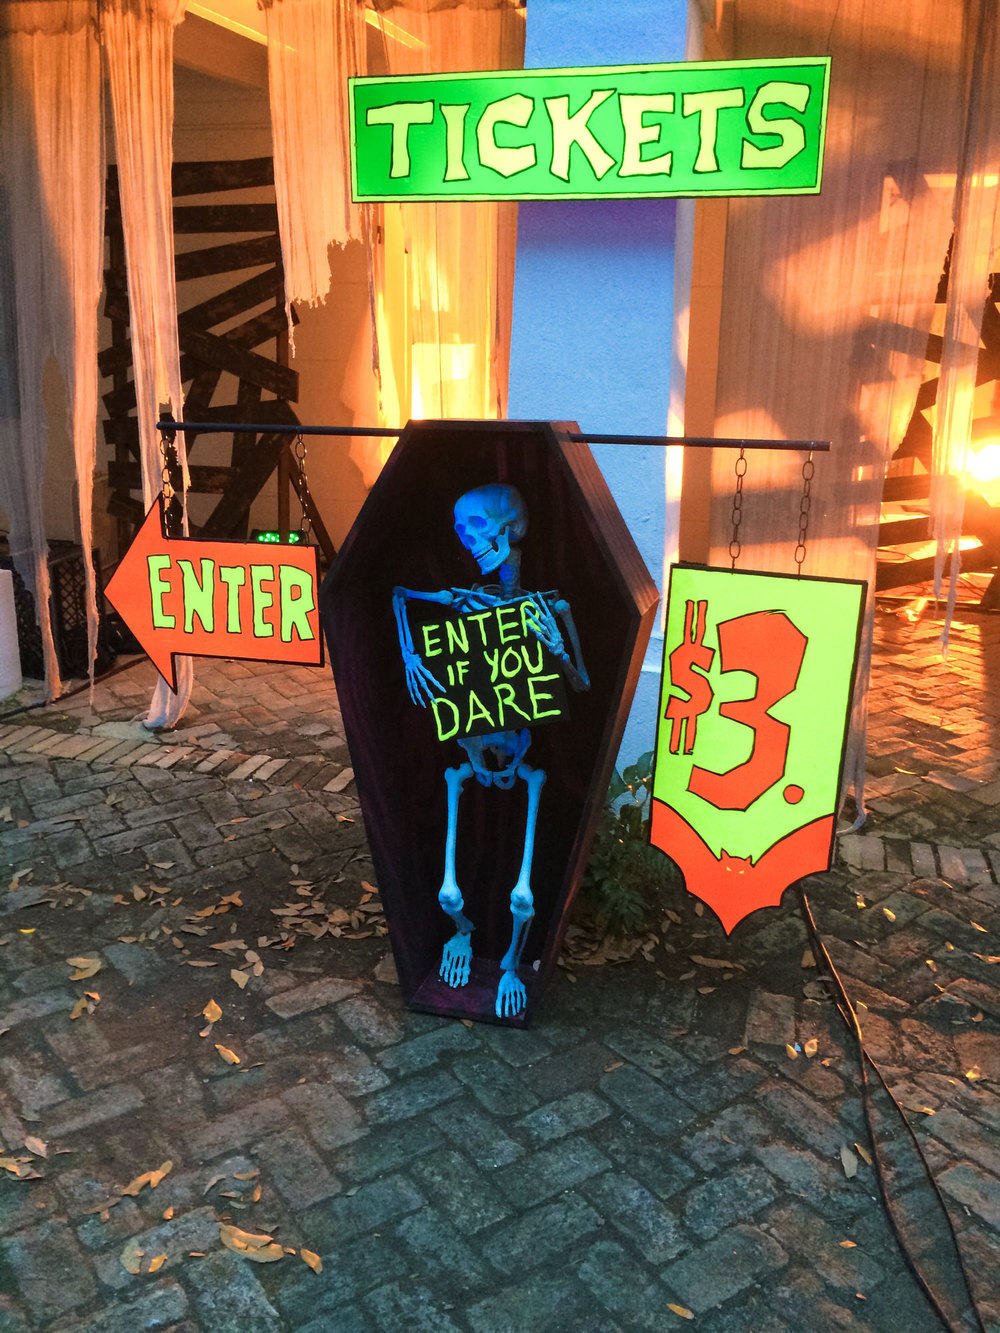 Nothing says creepy, period Halloween like blacklight effects. Here is our glowing ticket booth to enter the haunted plantation for Romp the Swamp.